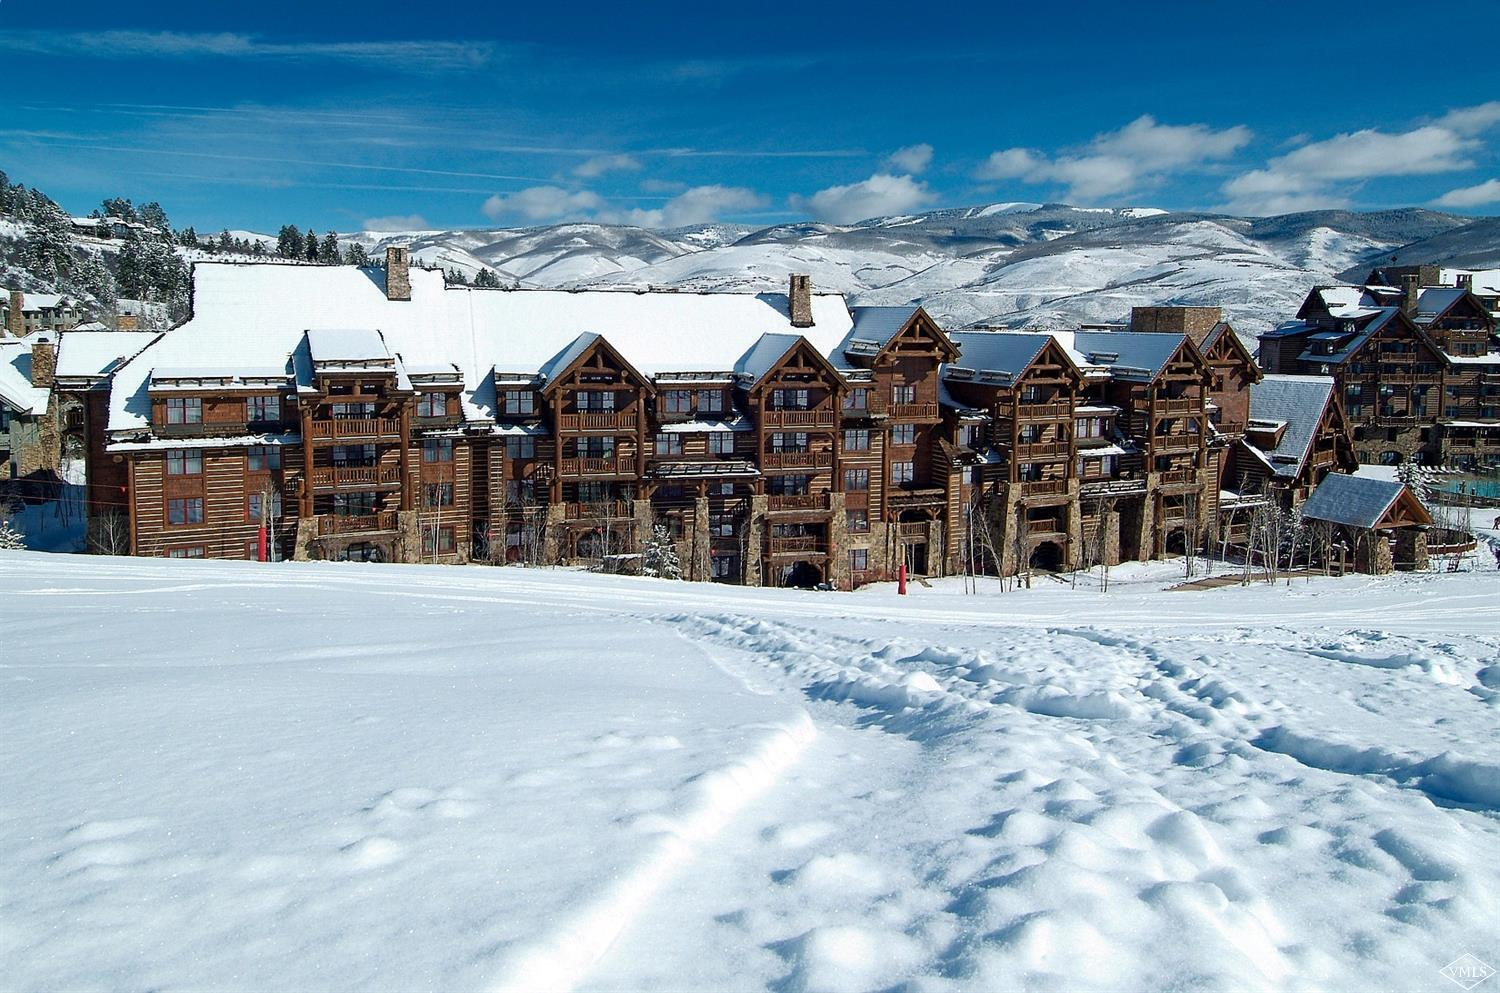 100 Bachelor Ridge, 3310, Beaver Creek, CO 81620 Property Photo